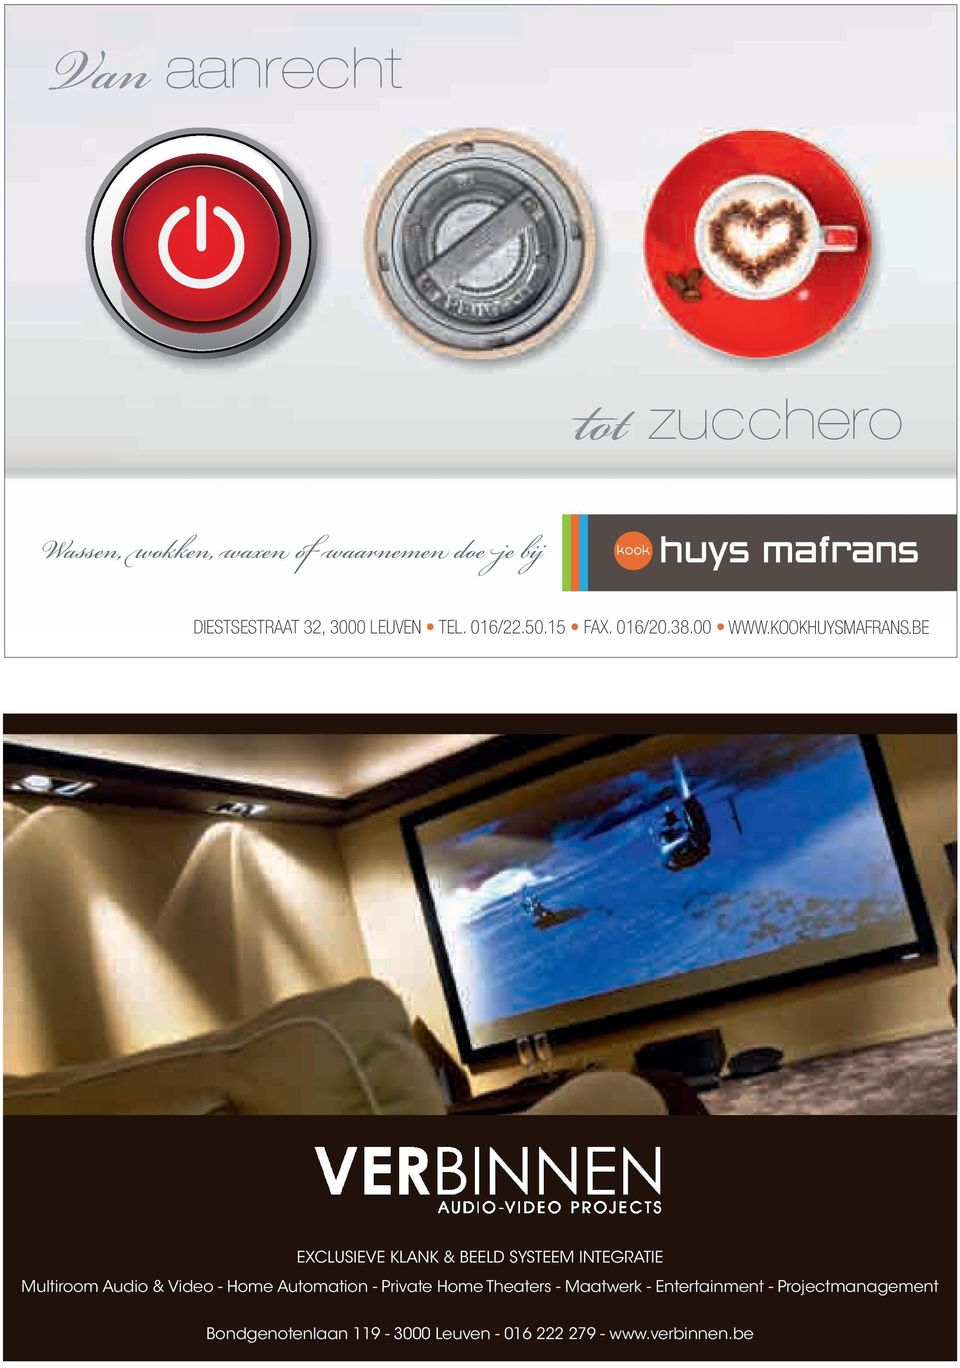 indd 1 2/24/10 4:22:49 PM EXCLUSIEVE KLANK & BEELD SYSTEEM INTEGRATIE Multiroom Audio & Video - Home Automation -